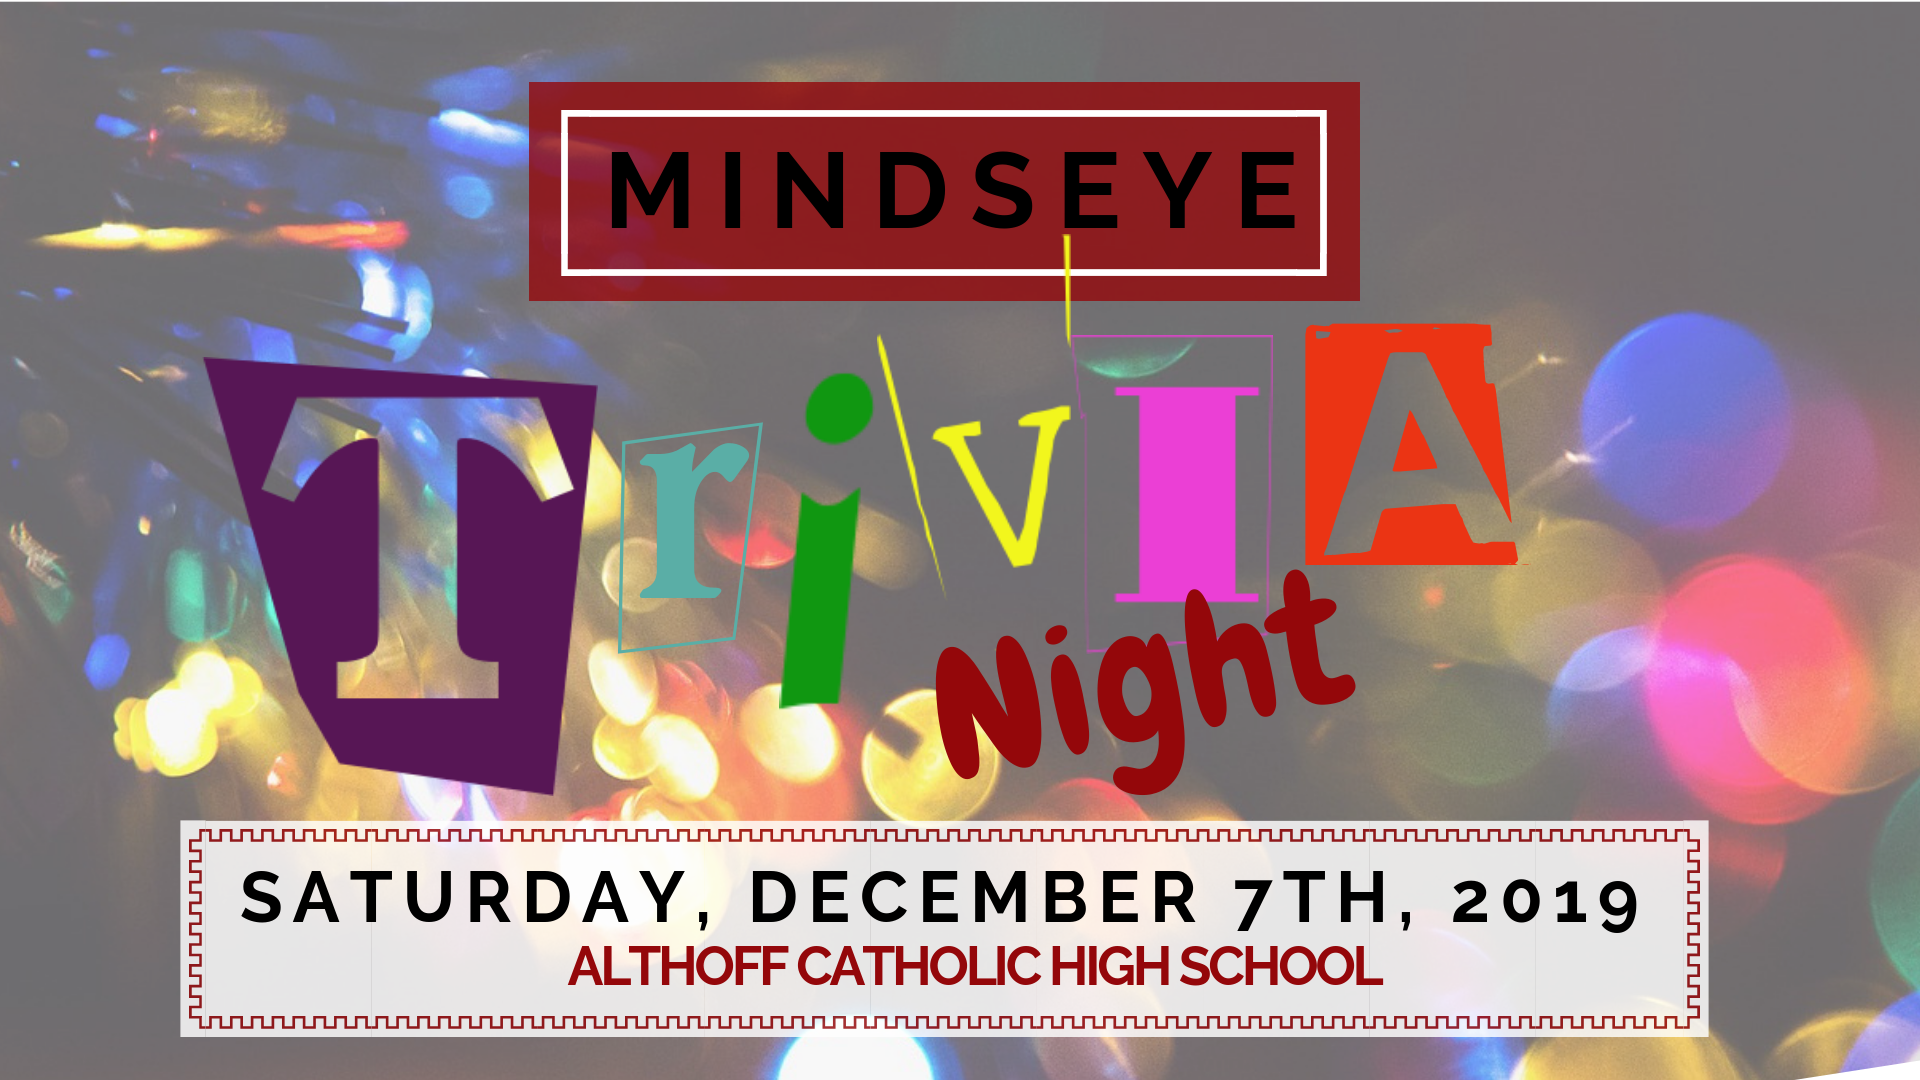 MindsEye's Holiday Trivia Night, December 2019 at Althoff Catholic High School, 5401 W Main St, Belleville, IL 62226